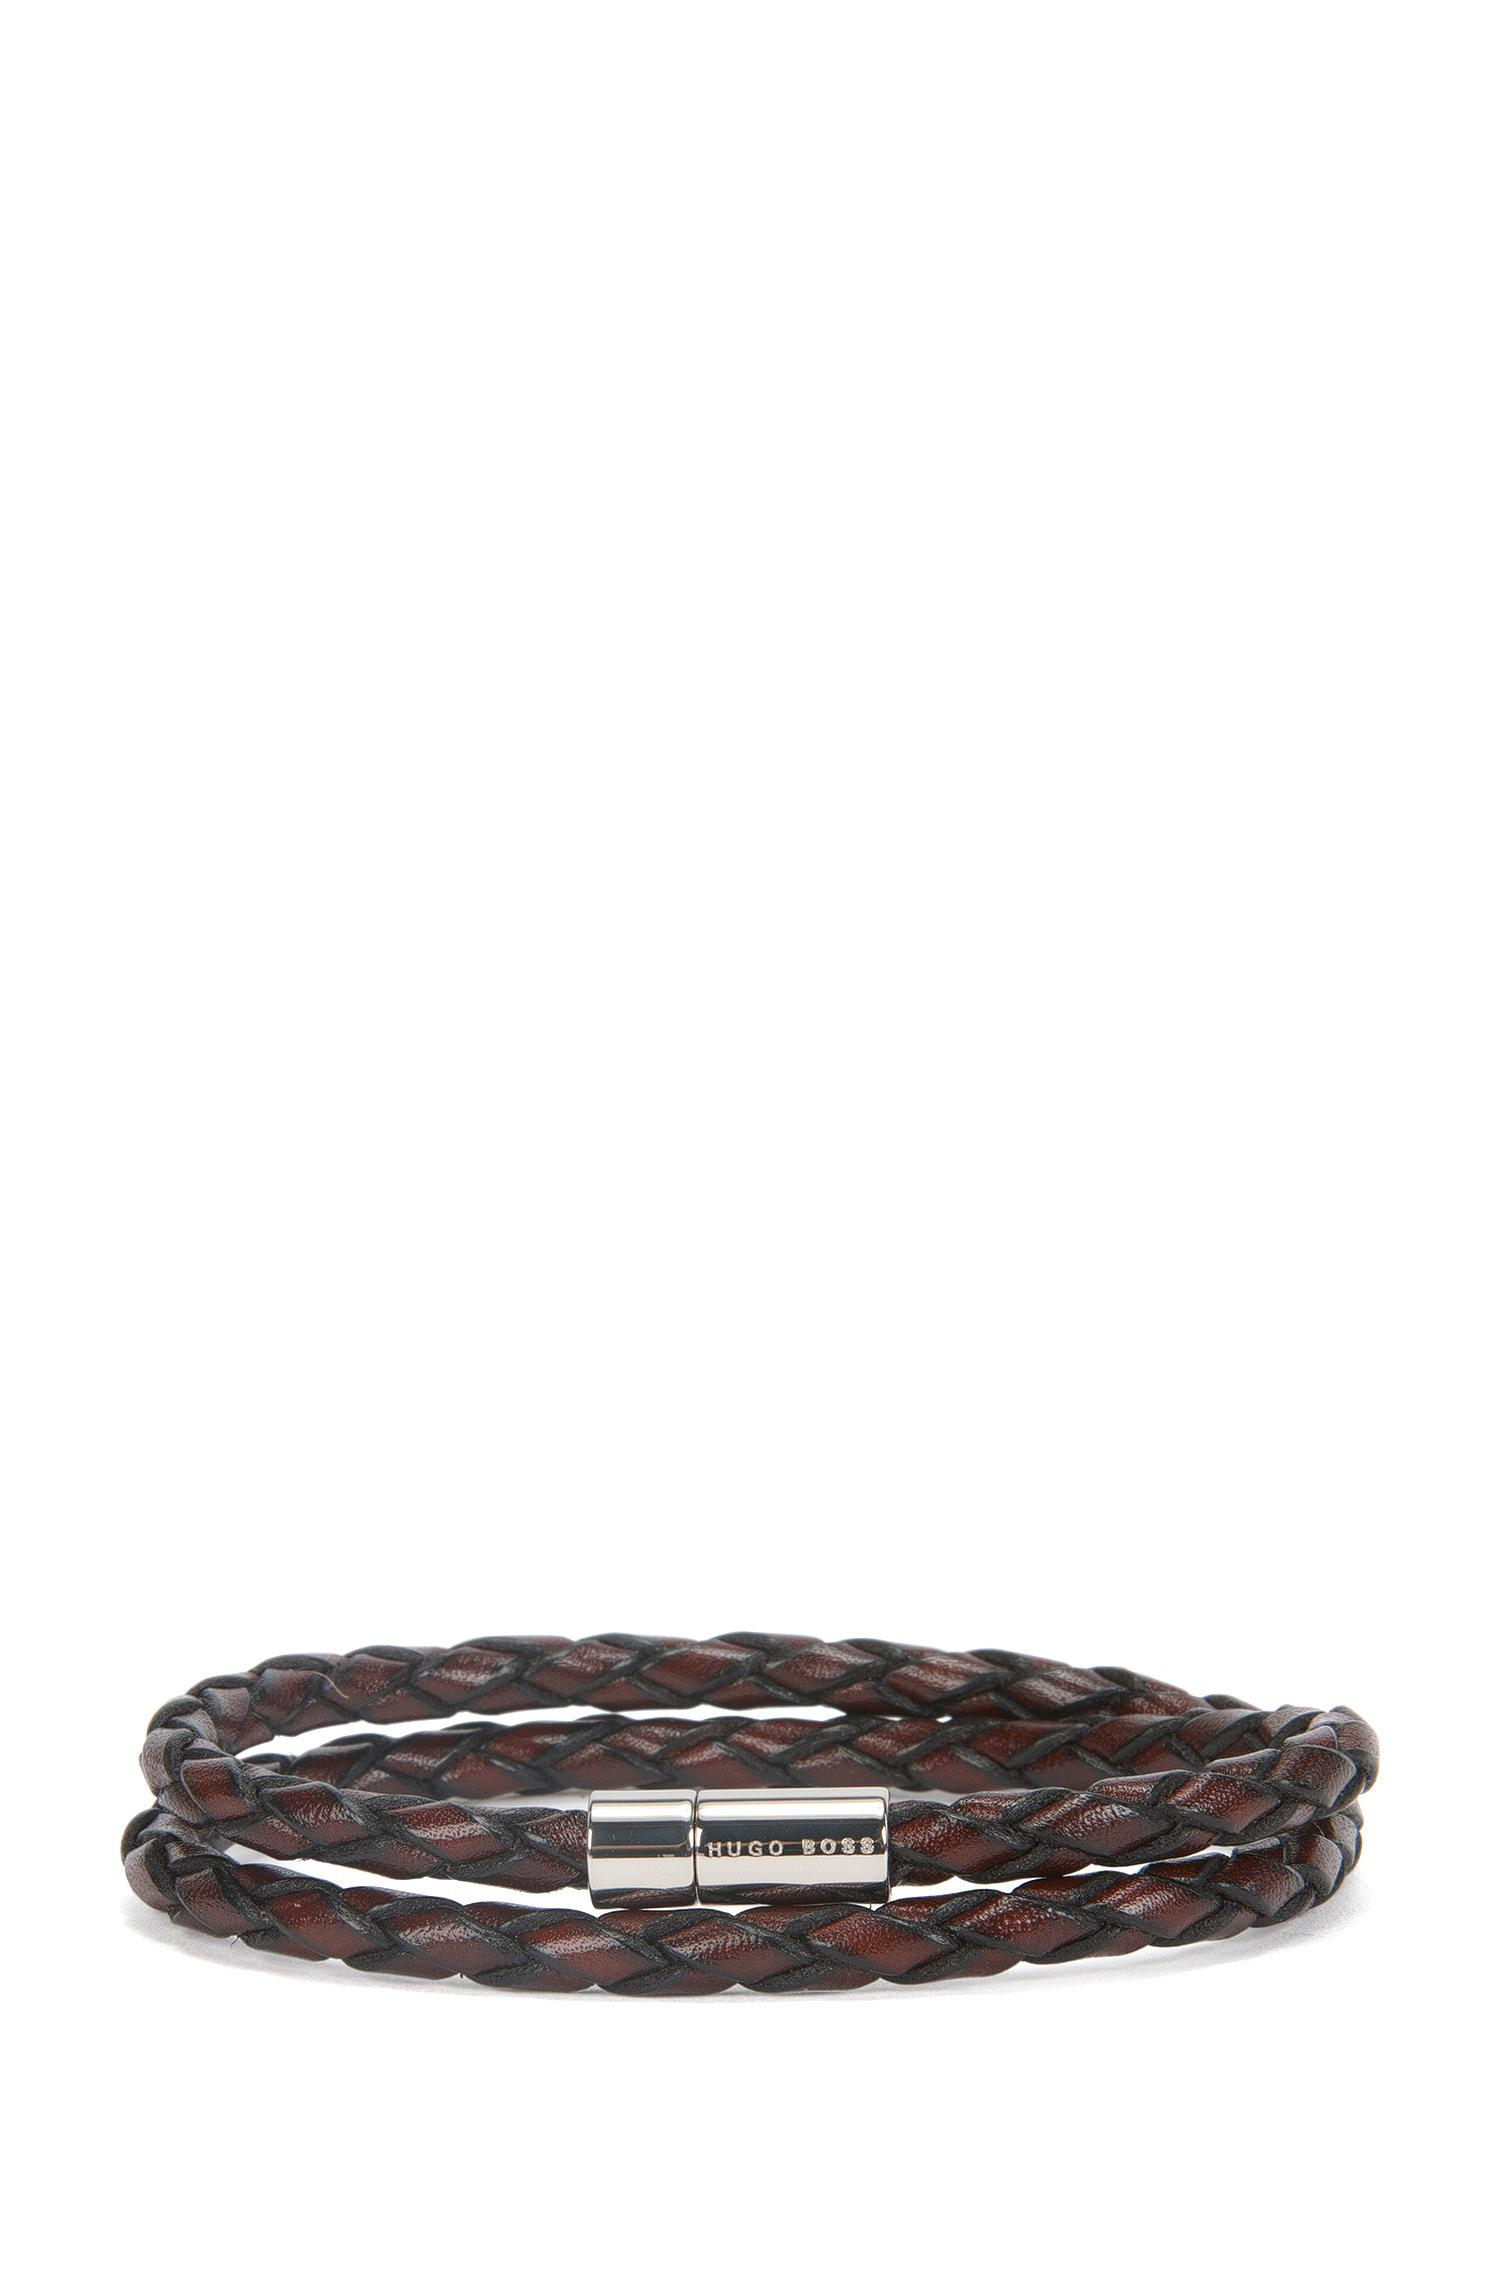 Boss  boris    Leather Double-wrap Bracelet in Brown for Men - Lyst 582e278fb4